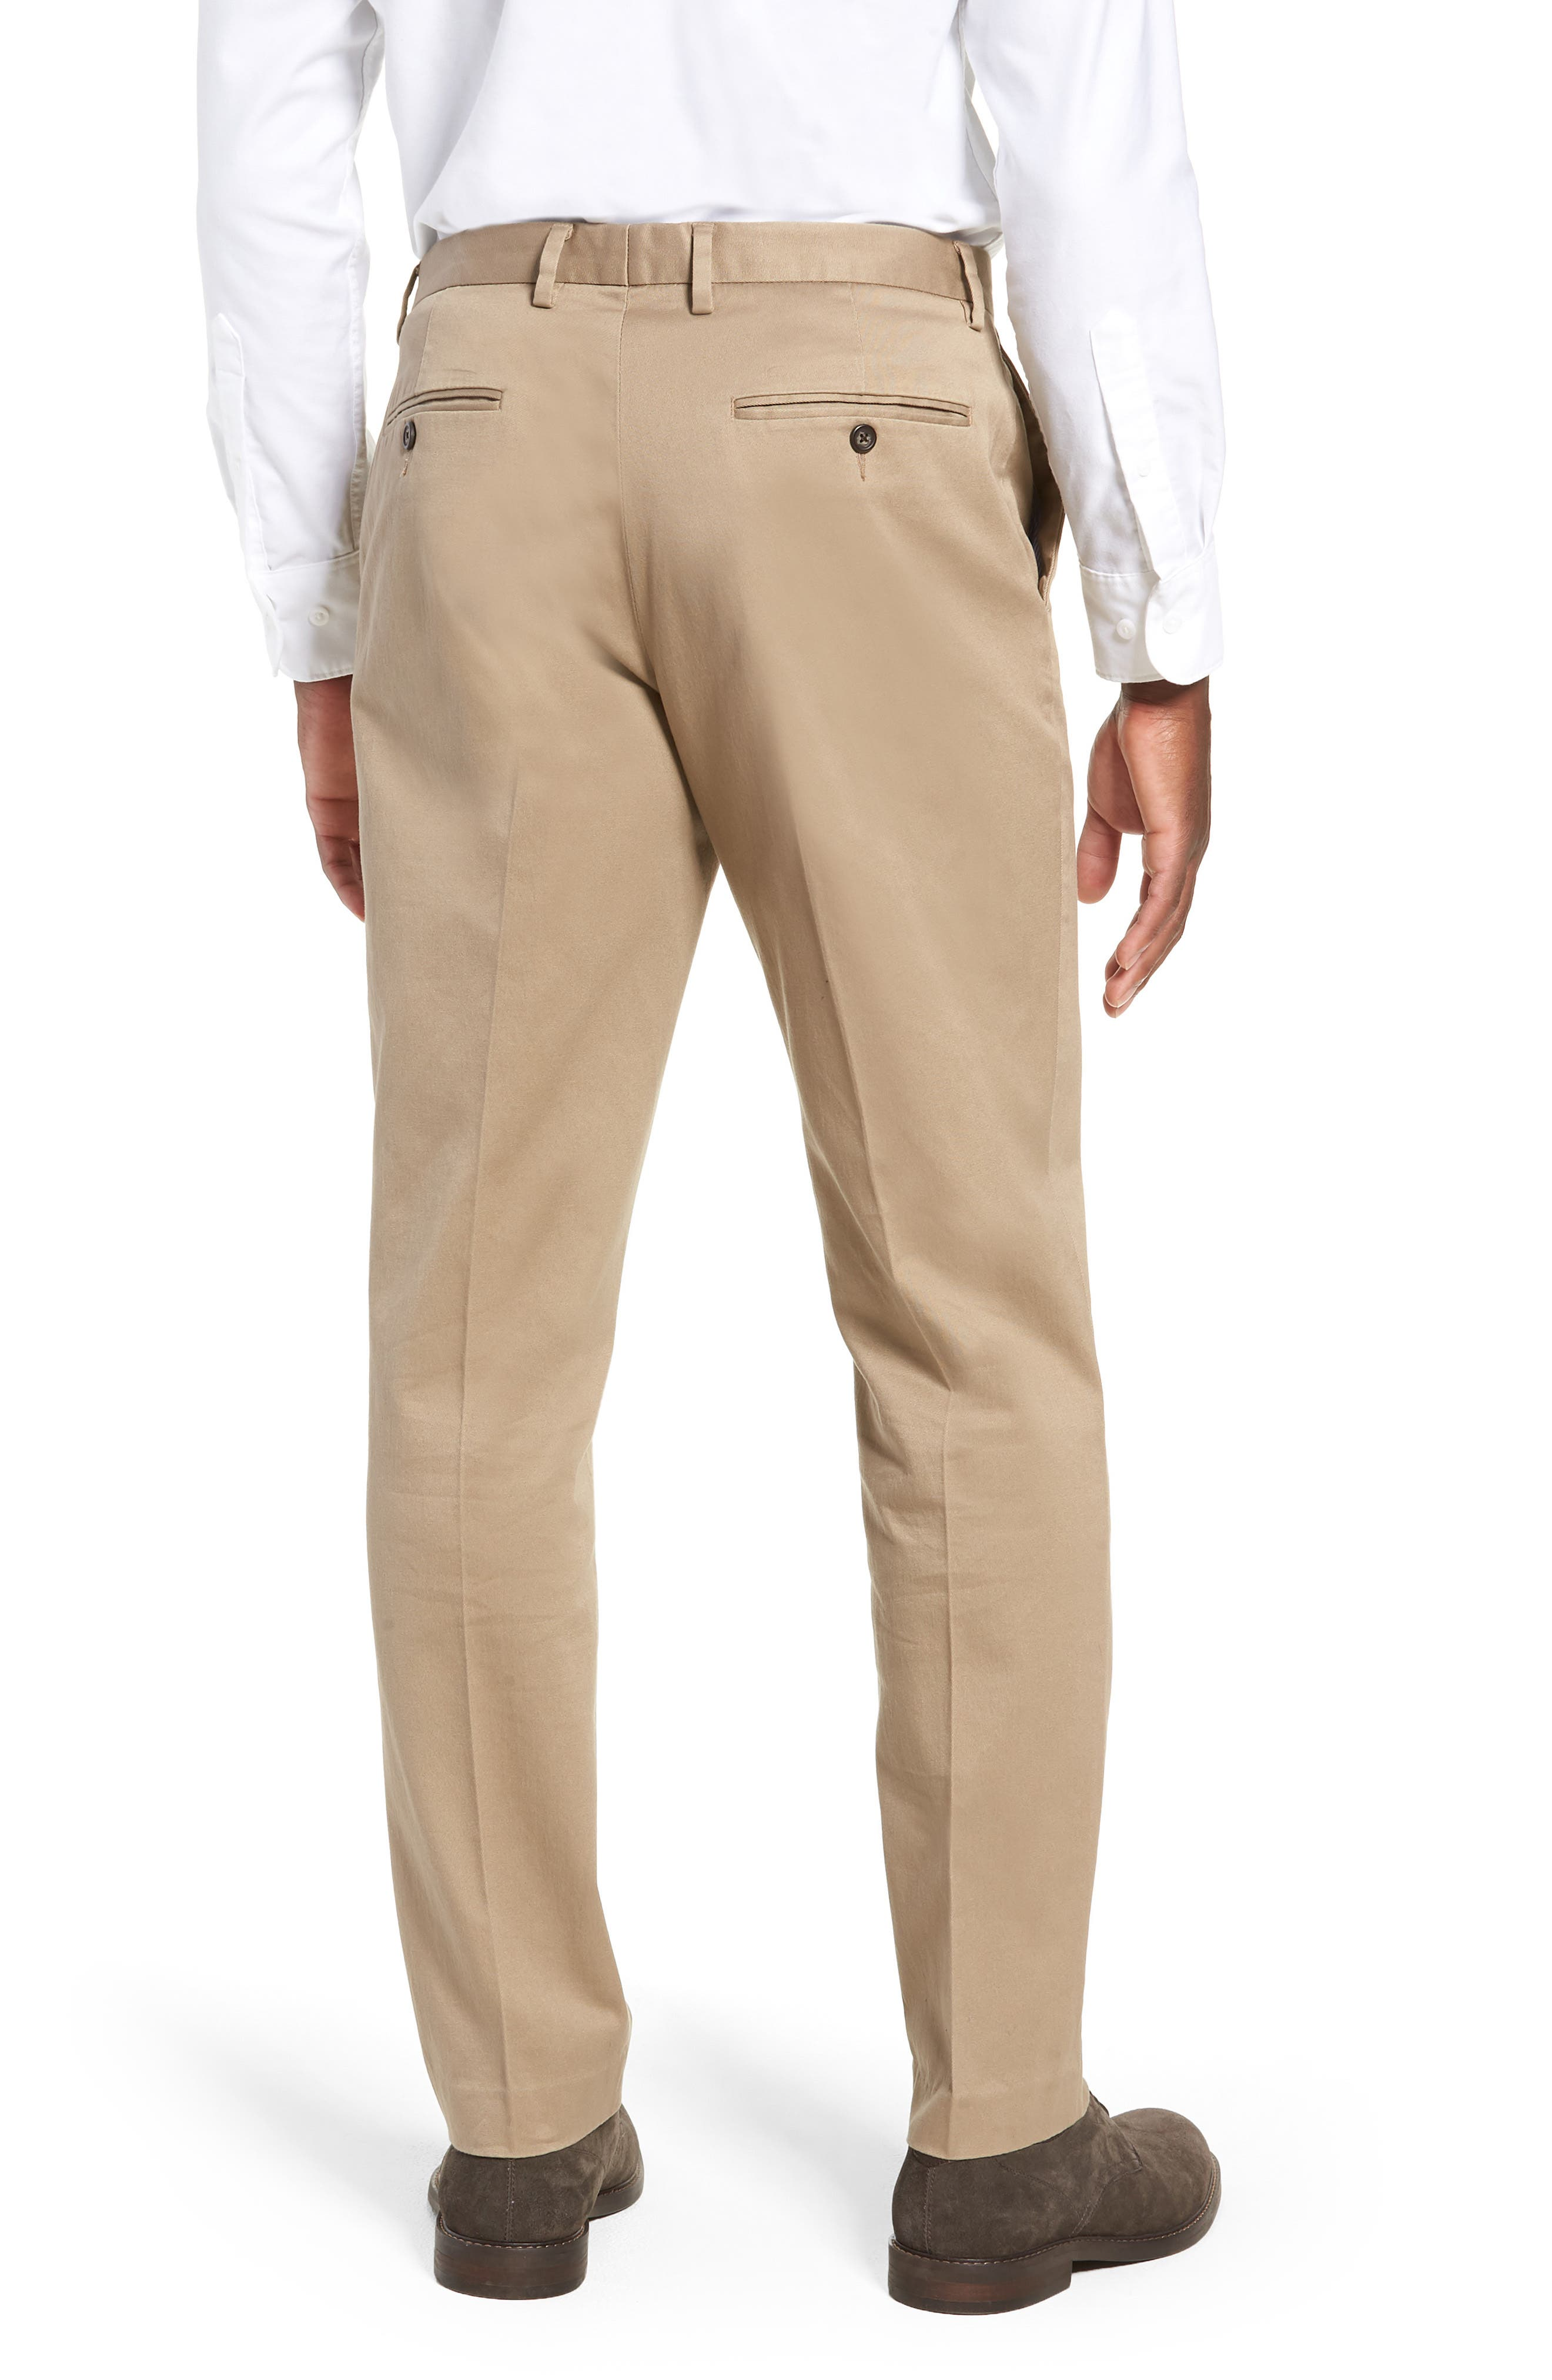 Ludlow Stretch Chino Pants,                             Alternate thumbnail 2, color,                             250